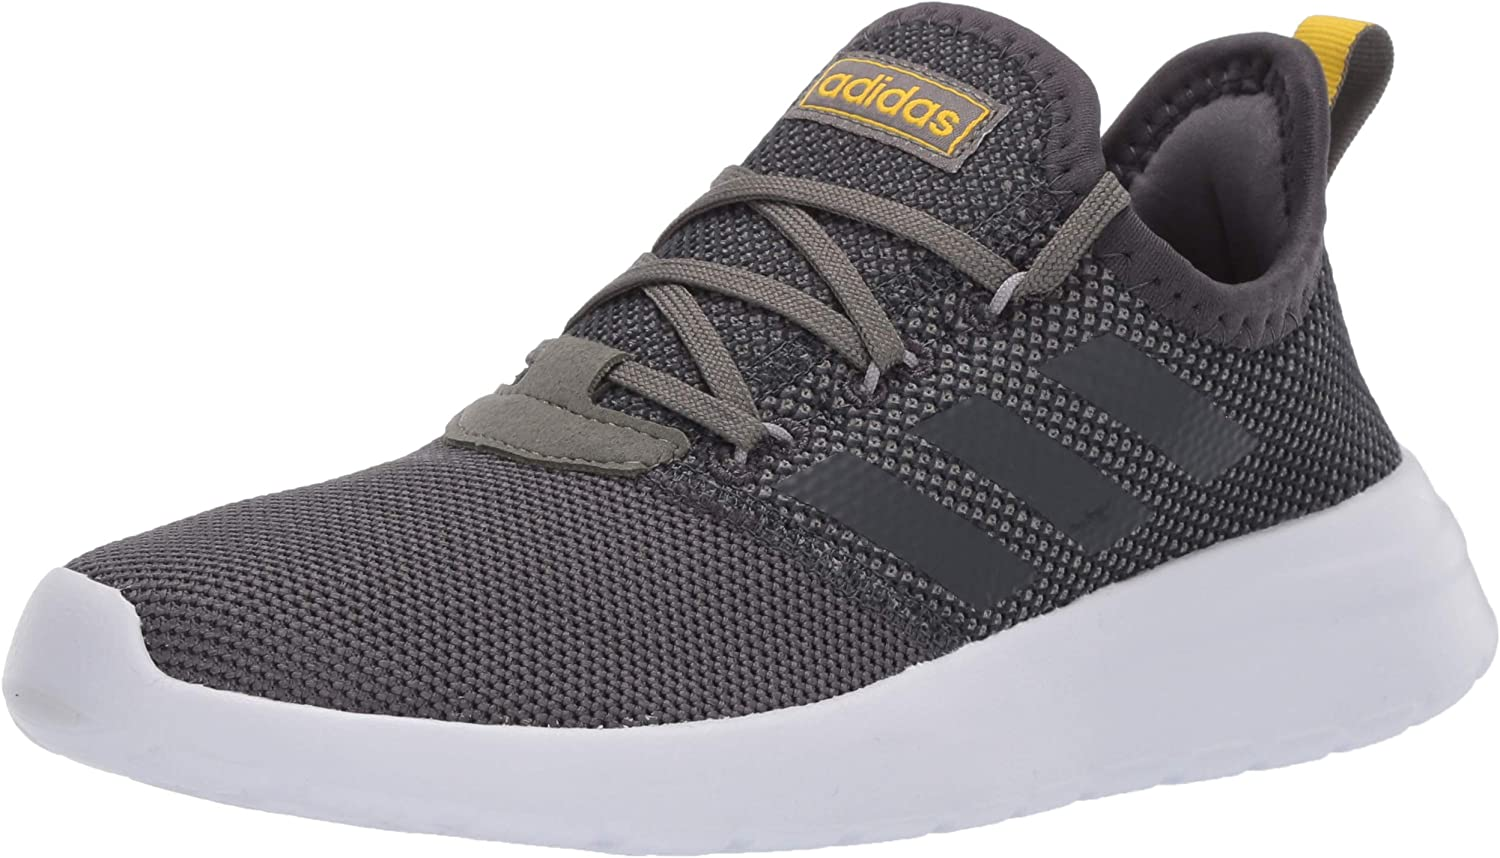 It is very popular Max 67% OFF adidas Unisex-Child Lite Racer Rbn Shoe Running